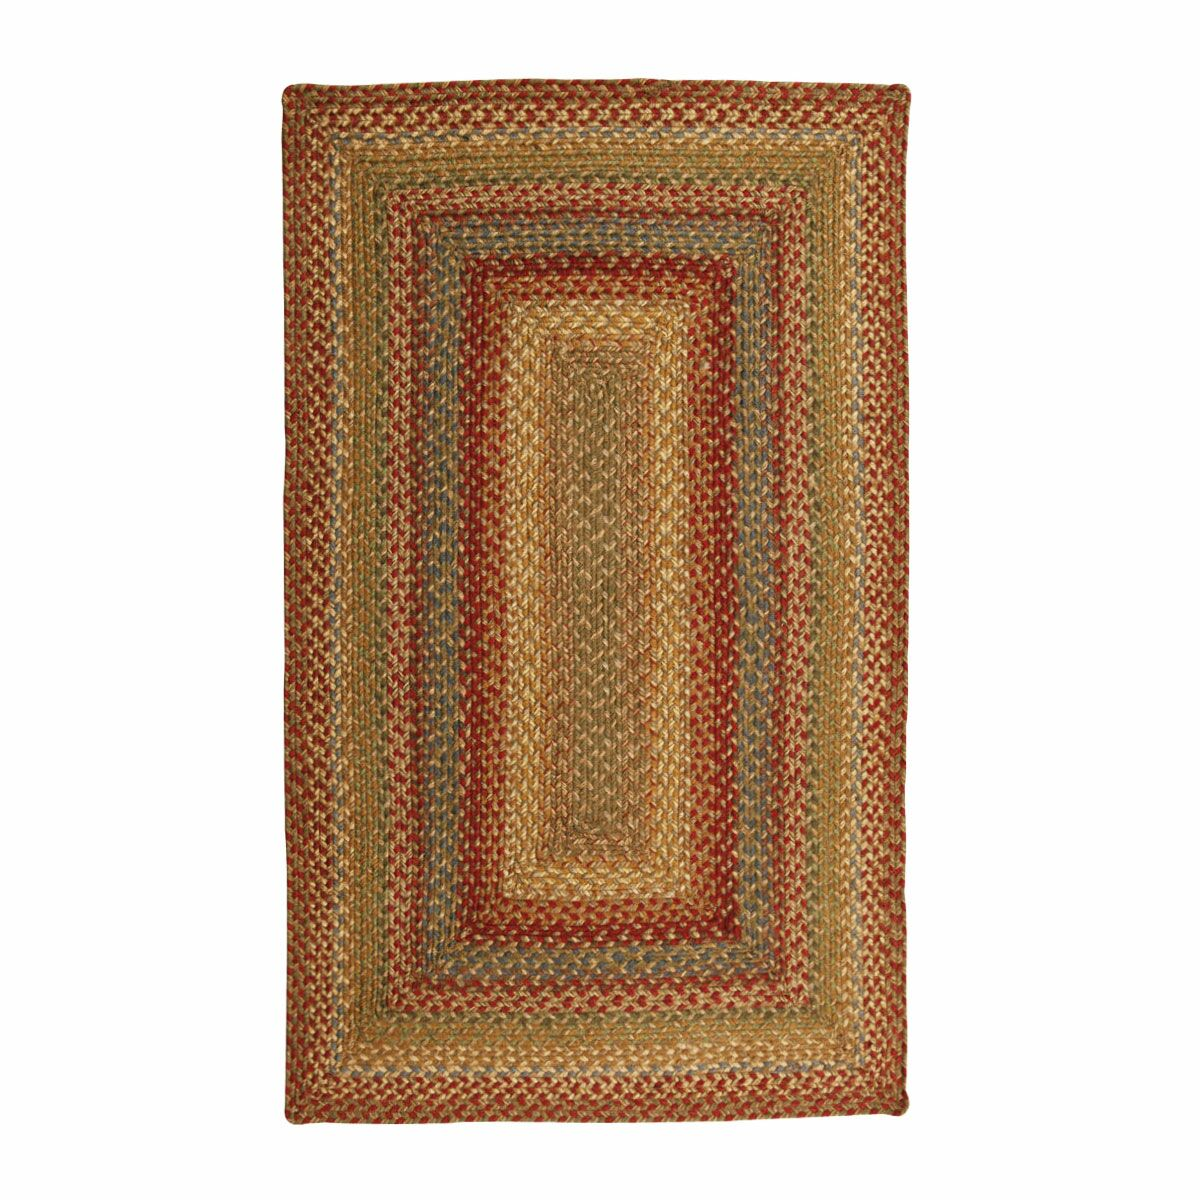 Doucoure Area Rug Rug Size: Rectangle 8' x 10'